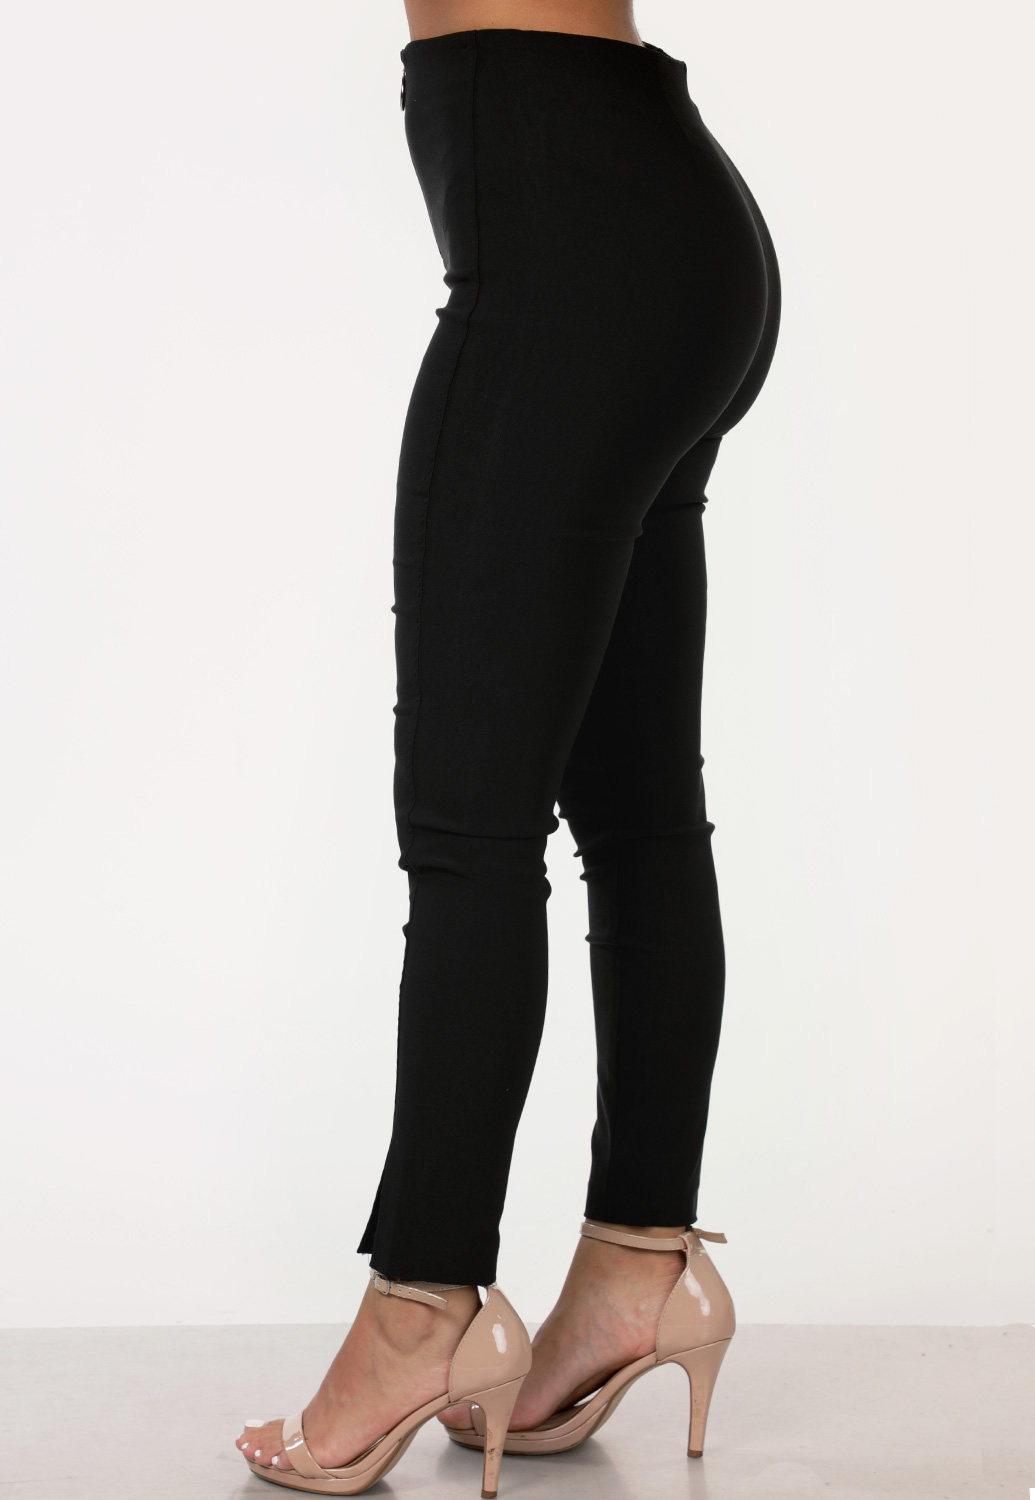 Zip Up Skinny Dressy Pants